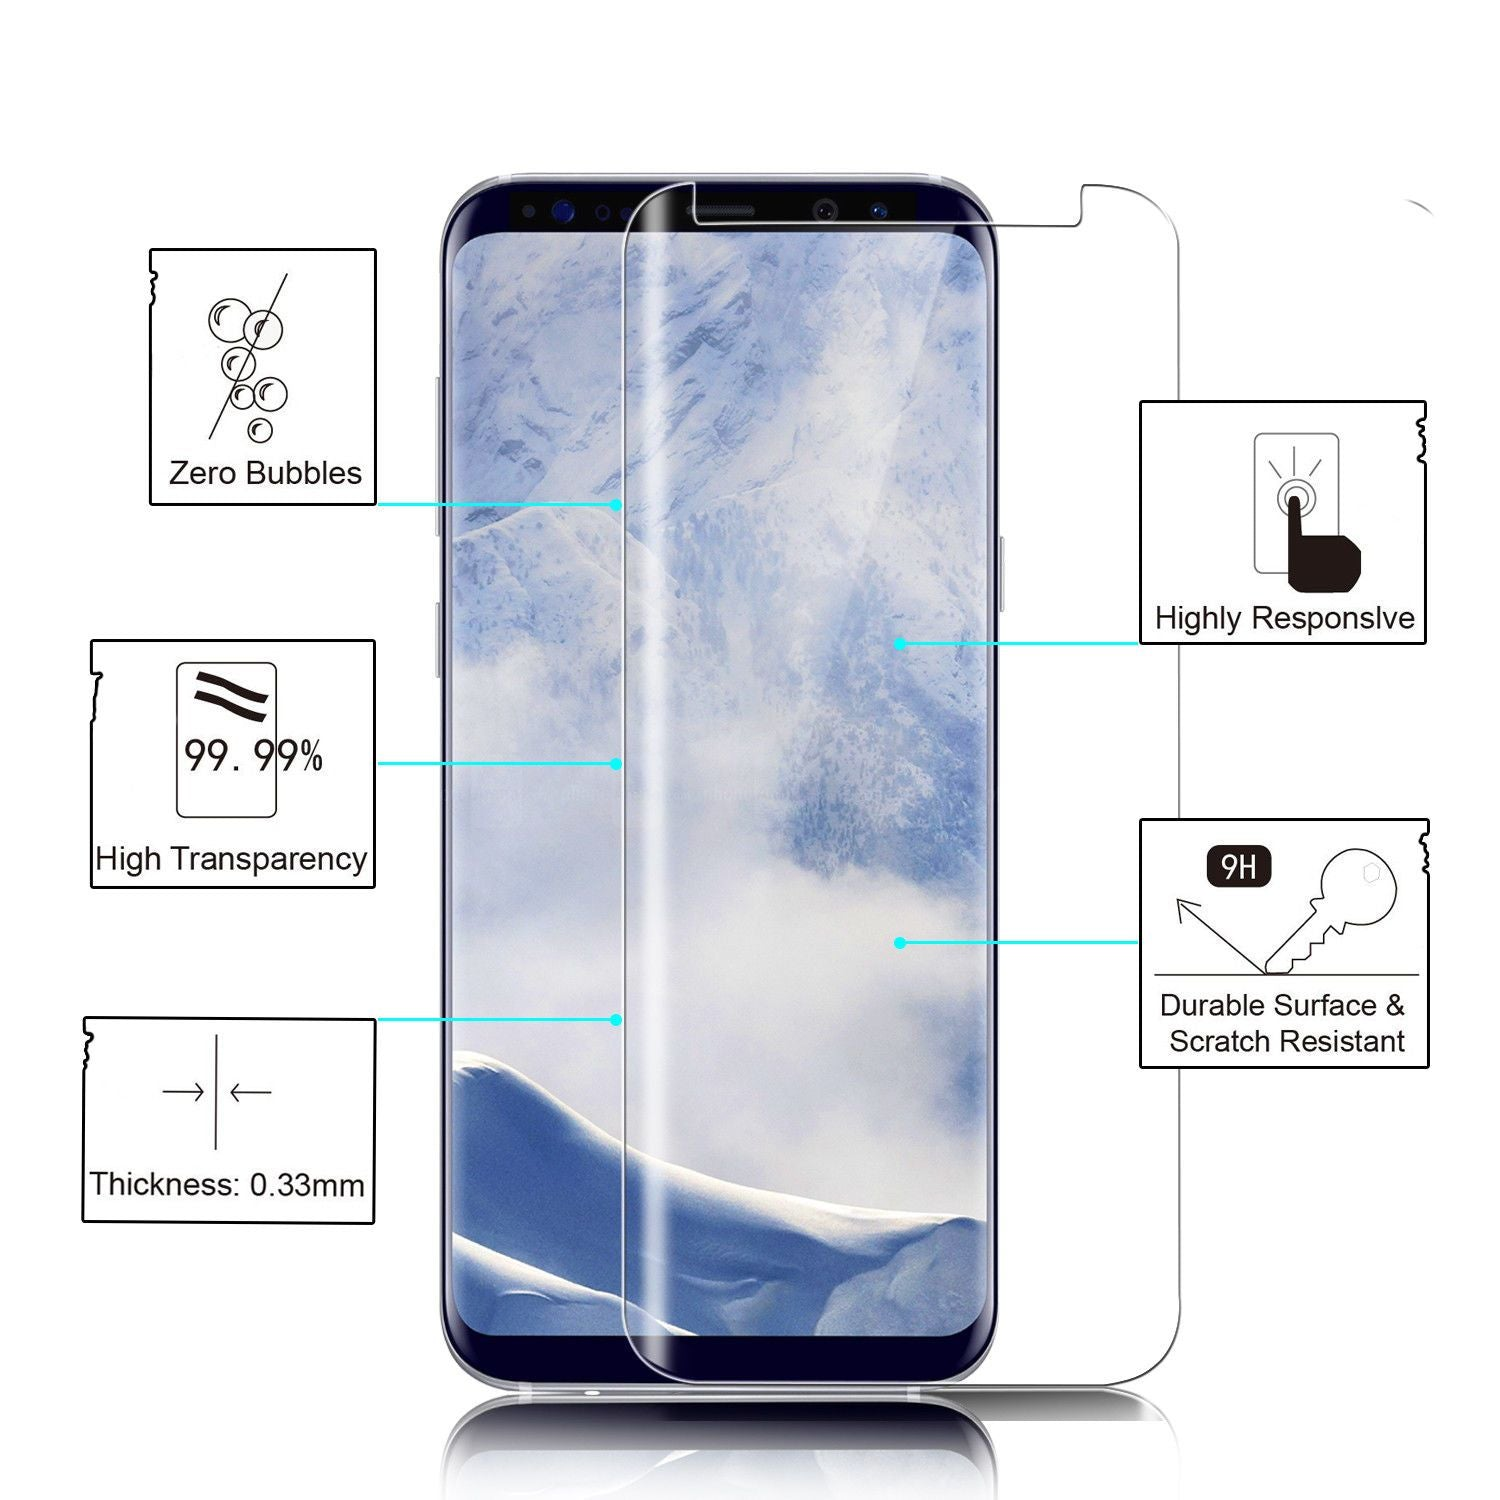 Buy 1 Get 1 FREE: Galaxy S9 Plus Rugged Plus Mirror Shine Cover